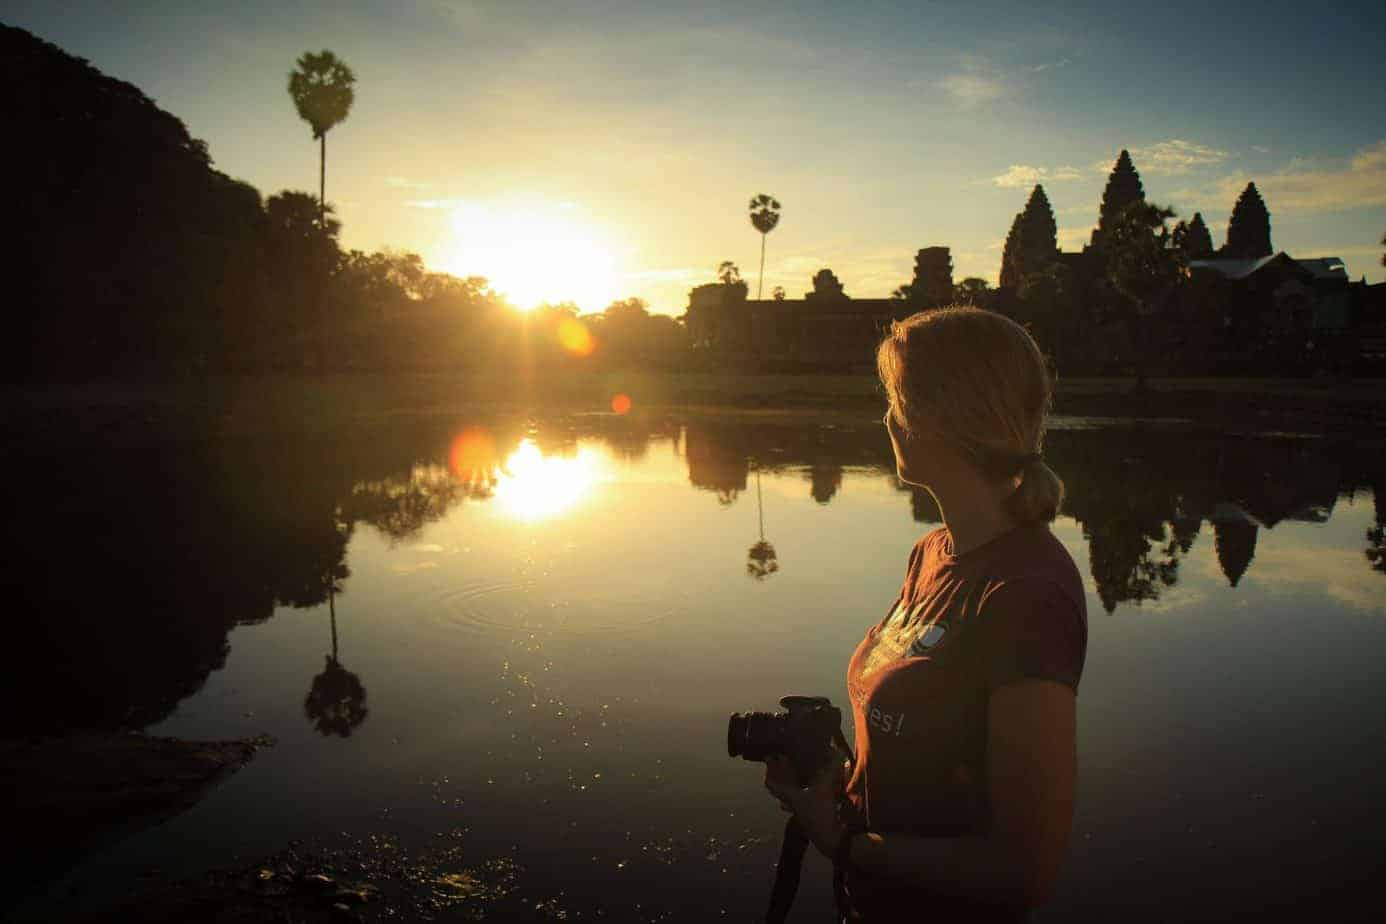 A traveller tries to capture the awe of Angkor Wat on camera!